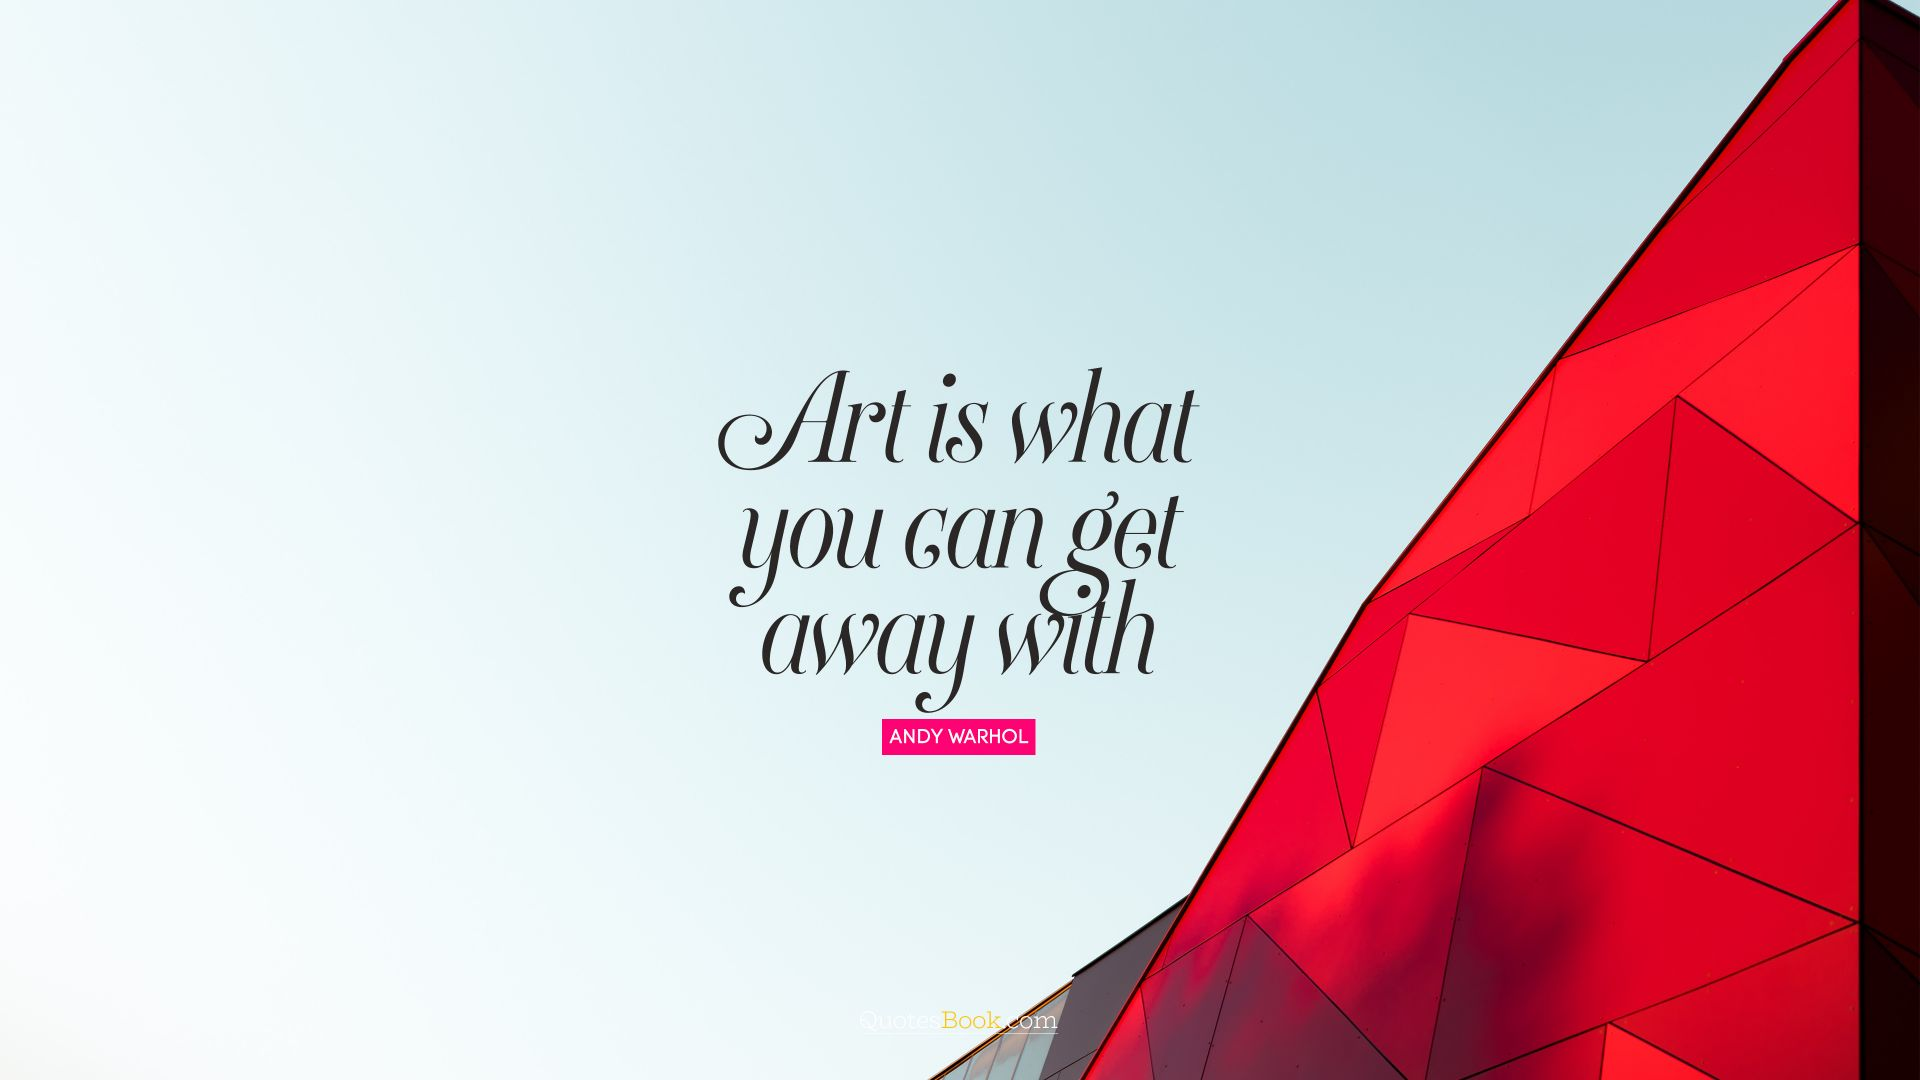 Art is what you can get away with. - Quote by Andy Warhol